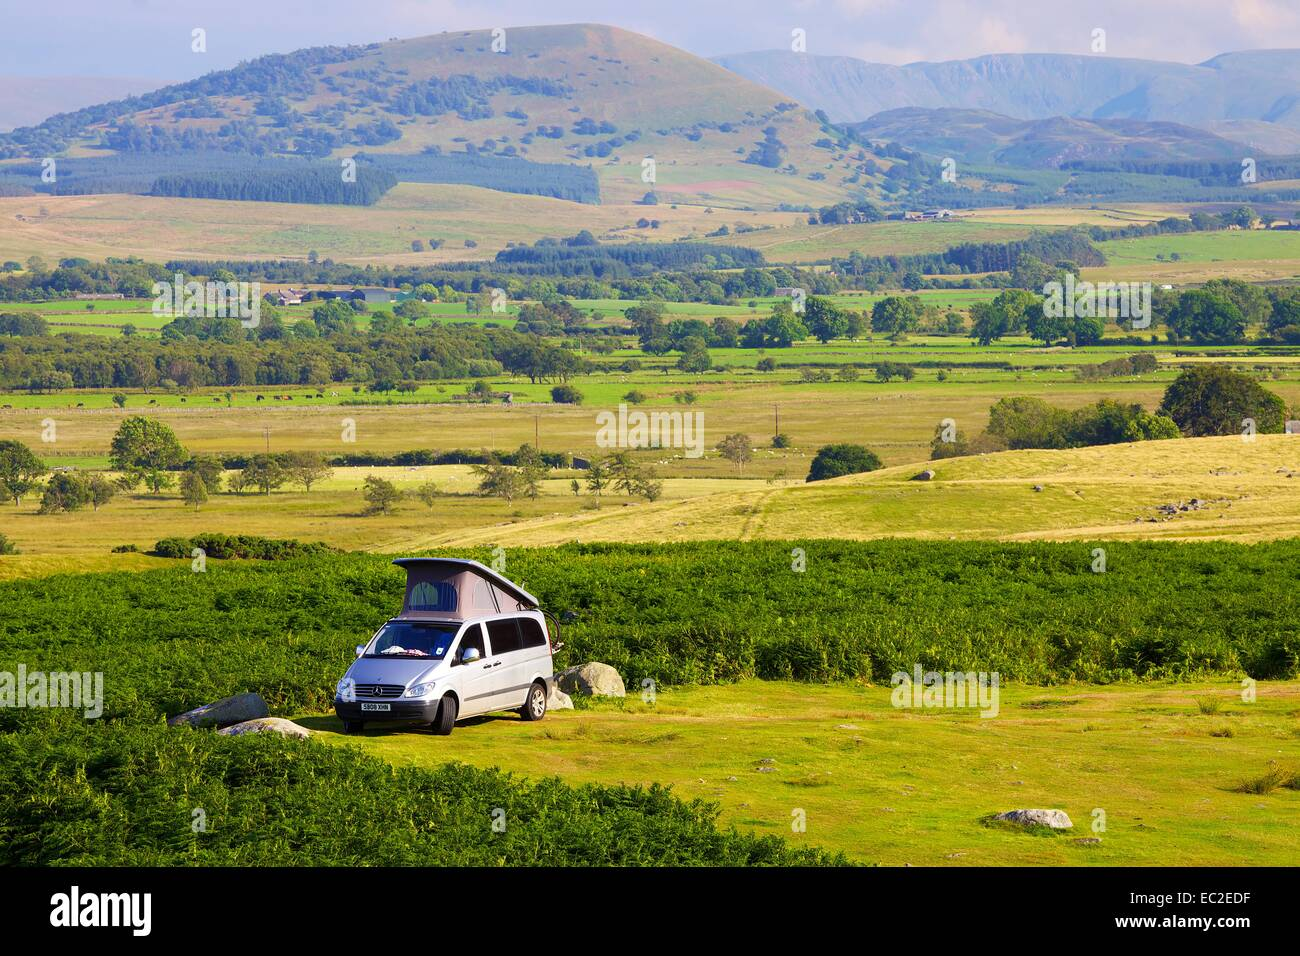 Camper Van parked on moor The Lake District National Park, Cumbria, England, UK. - Stock Image